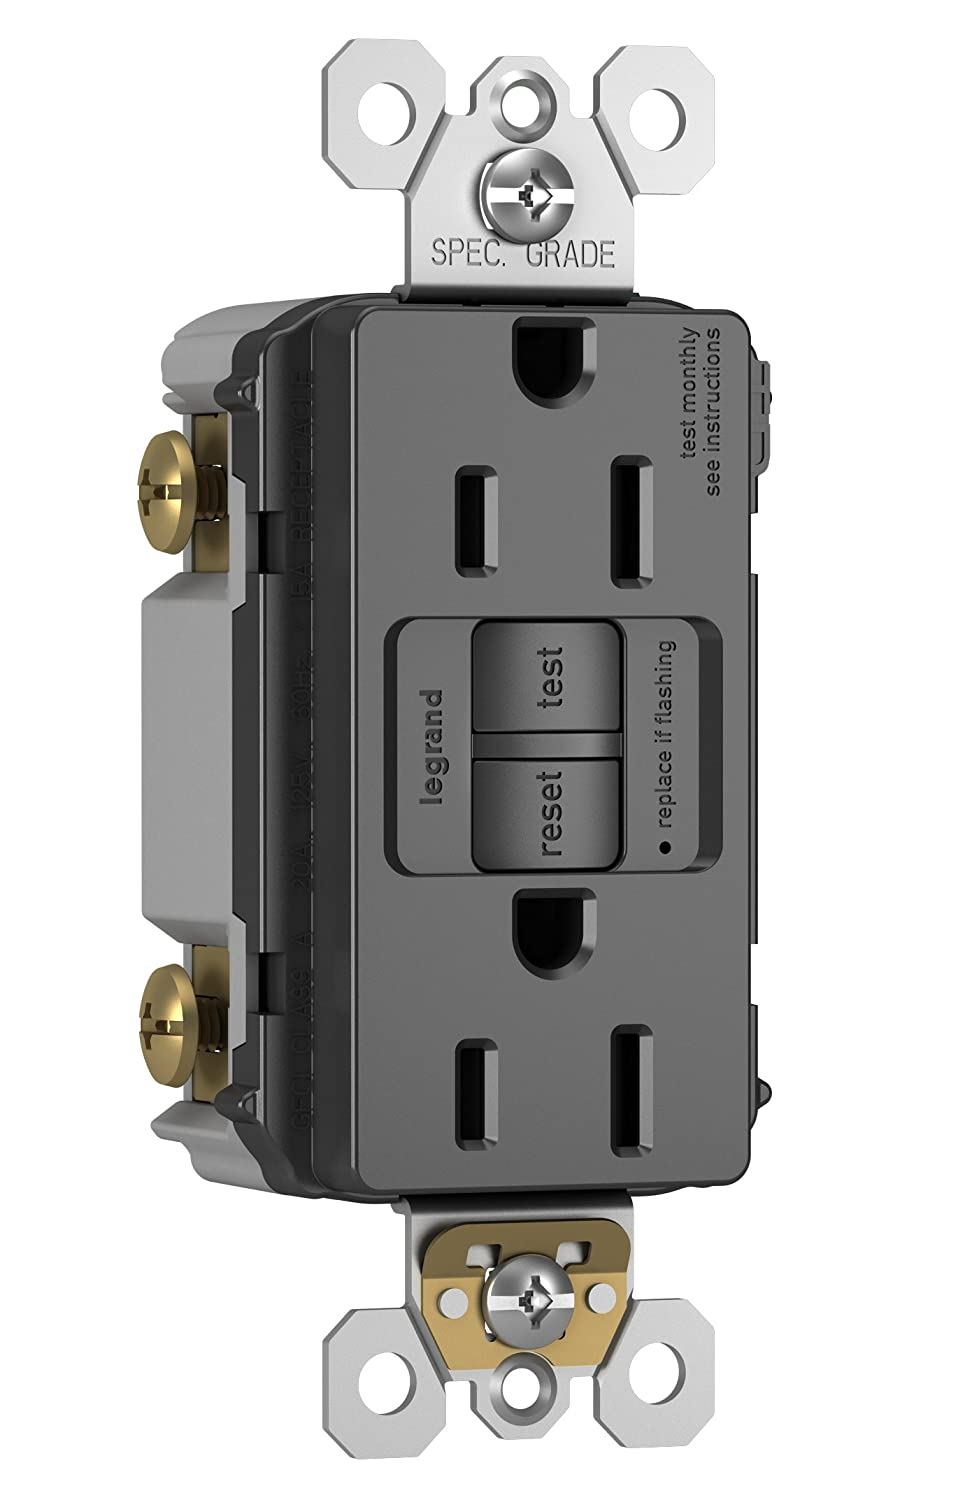 Legrand Pass Seymour Radiant 2097bkccd12 15 Amp Self Test Gfci Ivory Electrical Outlets Light Switches 15a Gfi Outlet Black